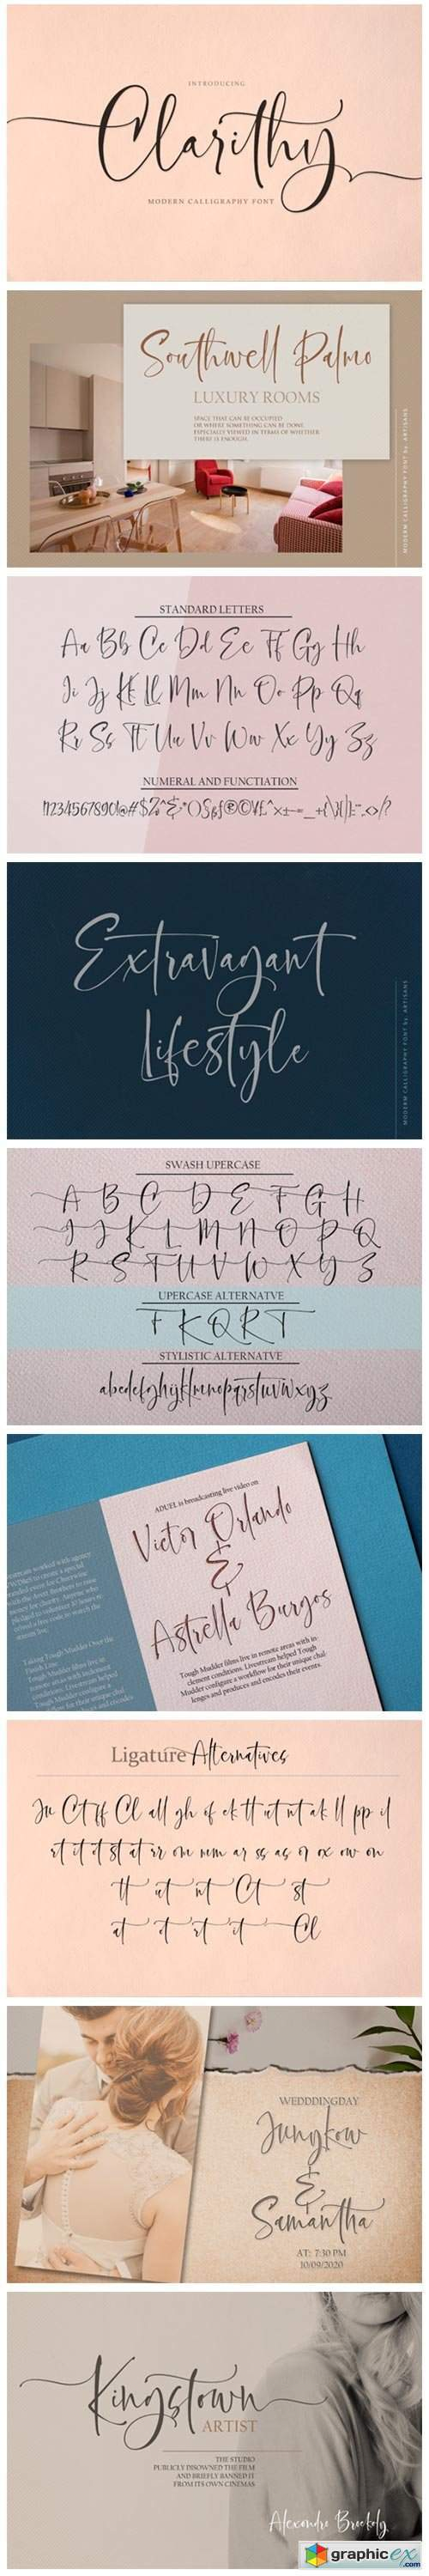 Clarithy Font